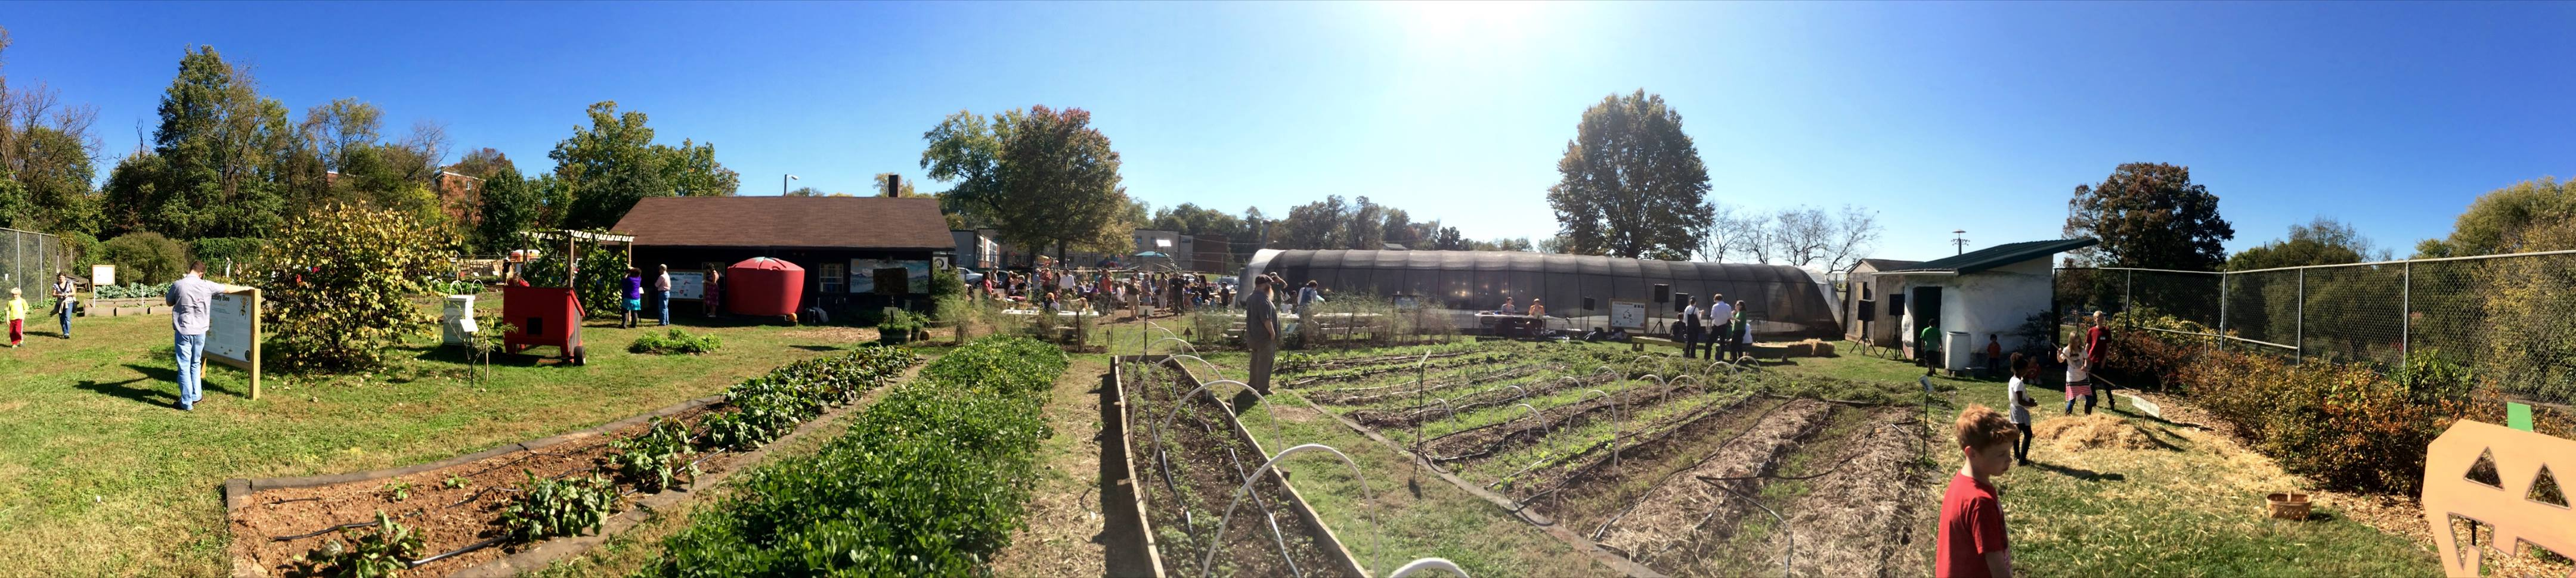 Americorps Job On Community Farm In Tennessee Beginning